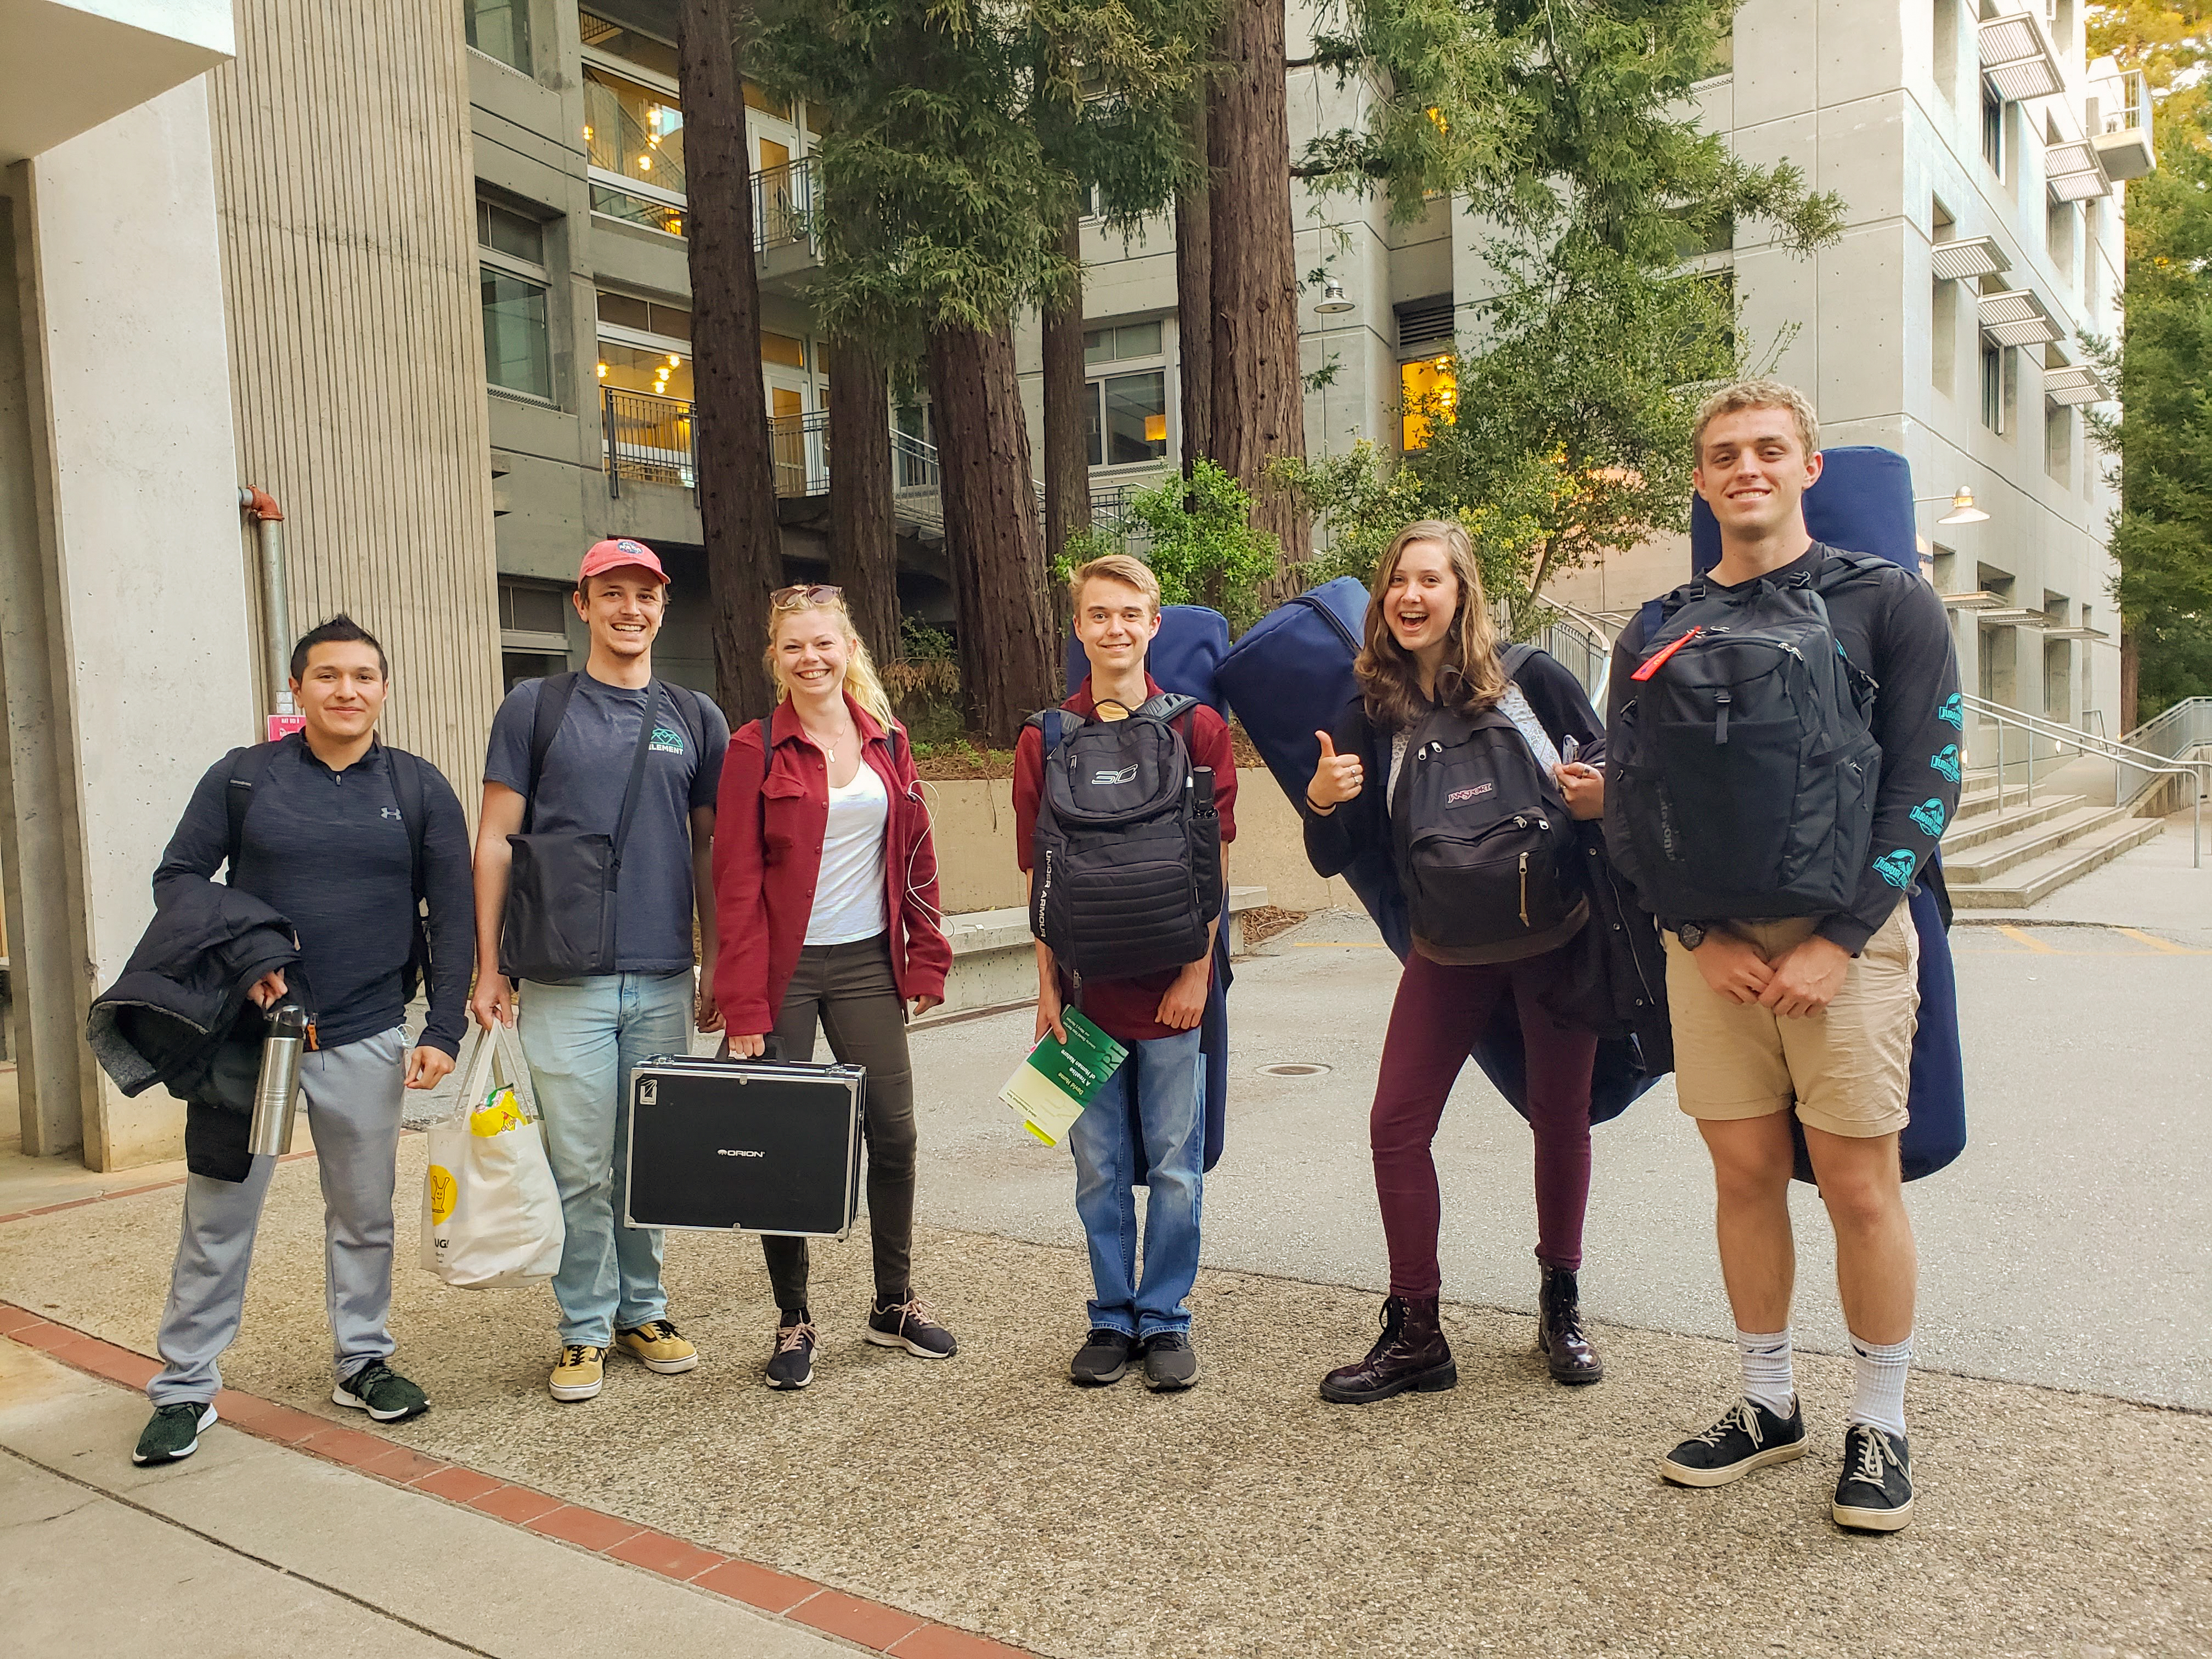 Students face the camera for a photo while carrying large tube like bags for telescopes and backpacks. They are students after all.